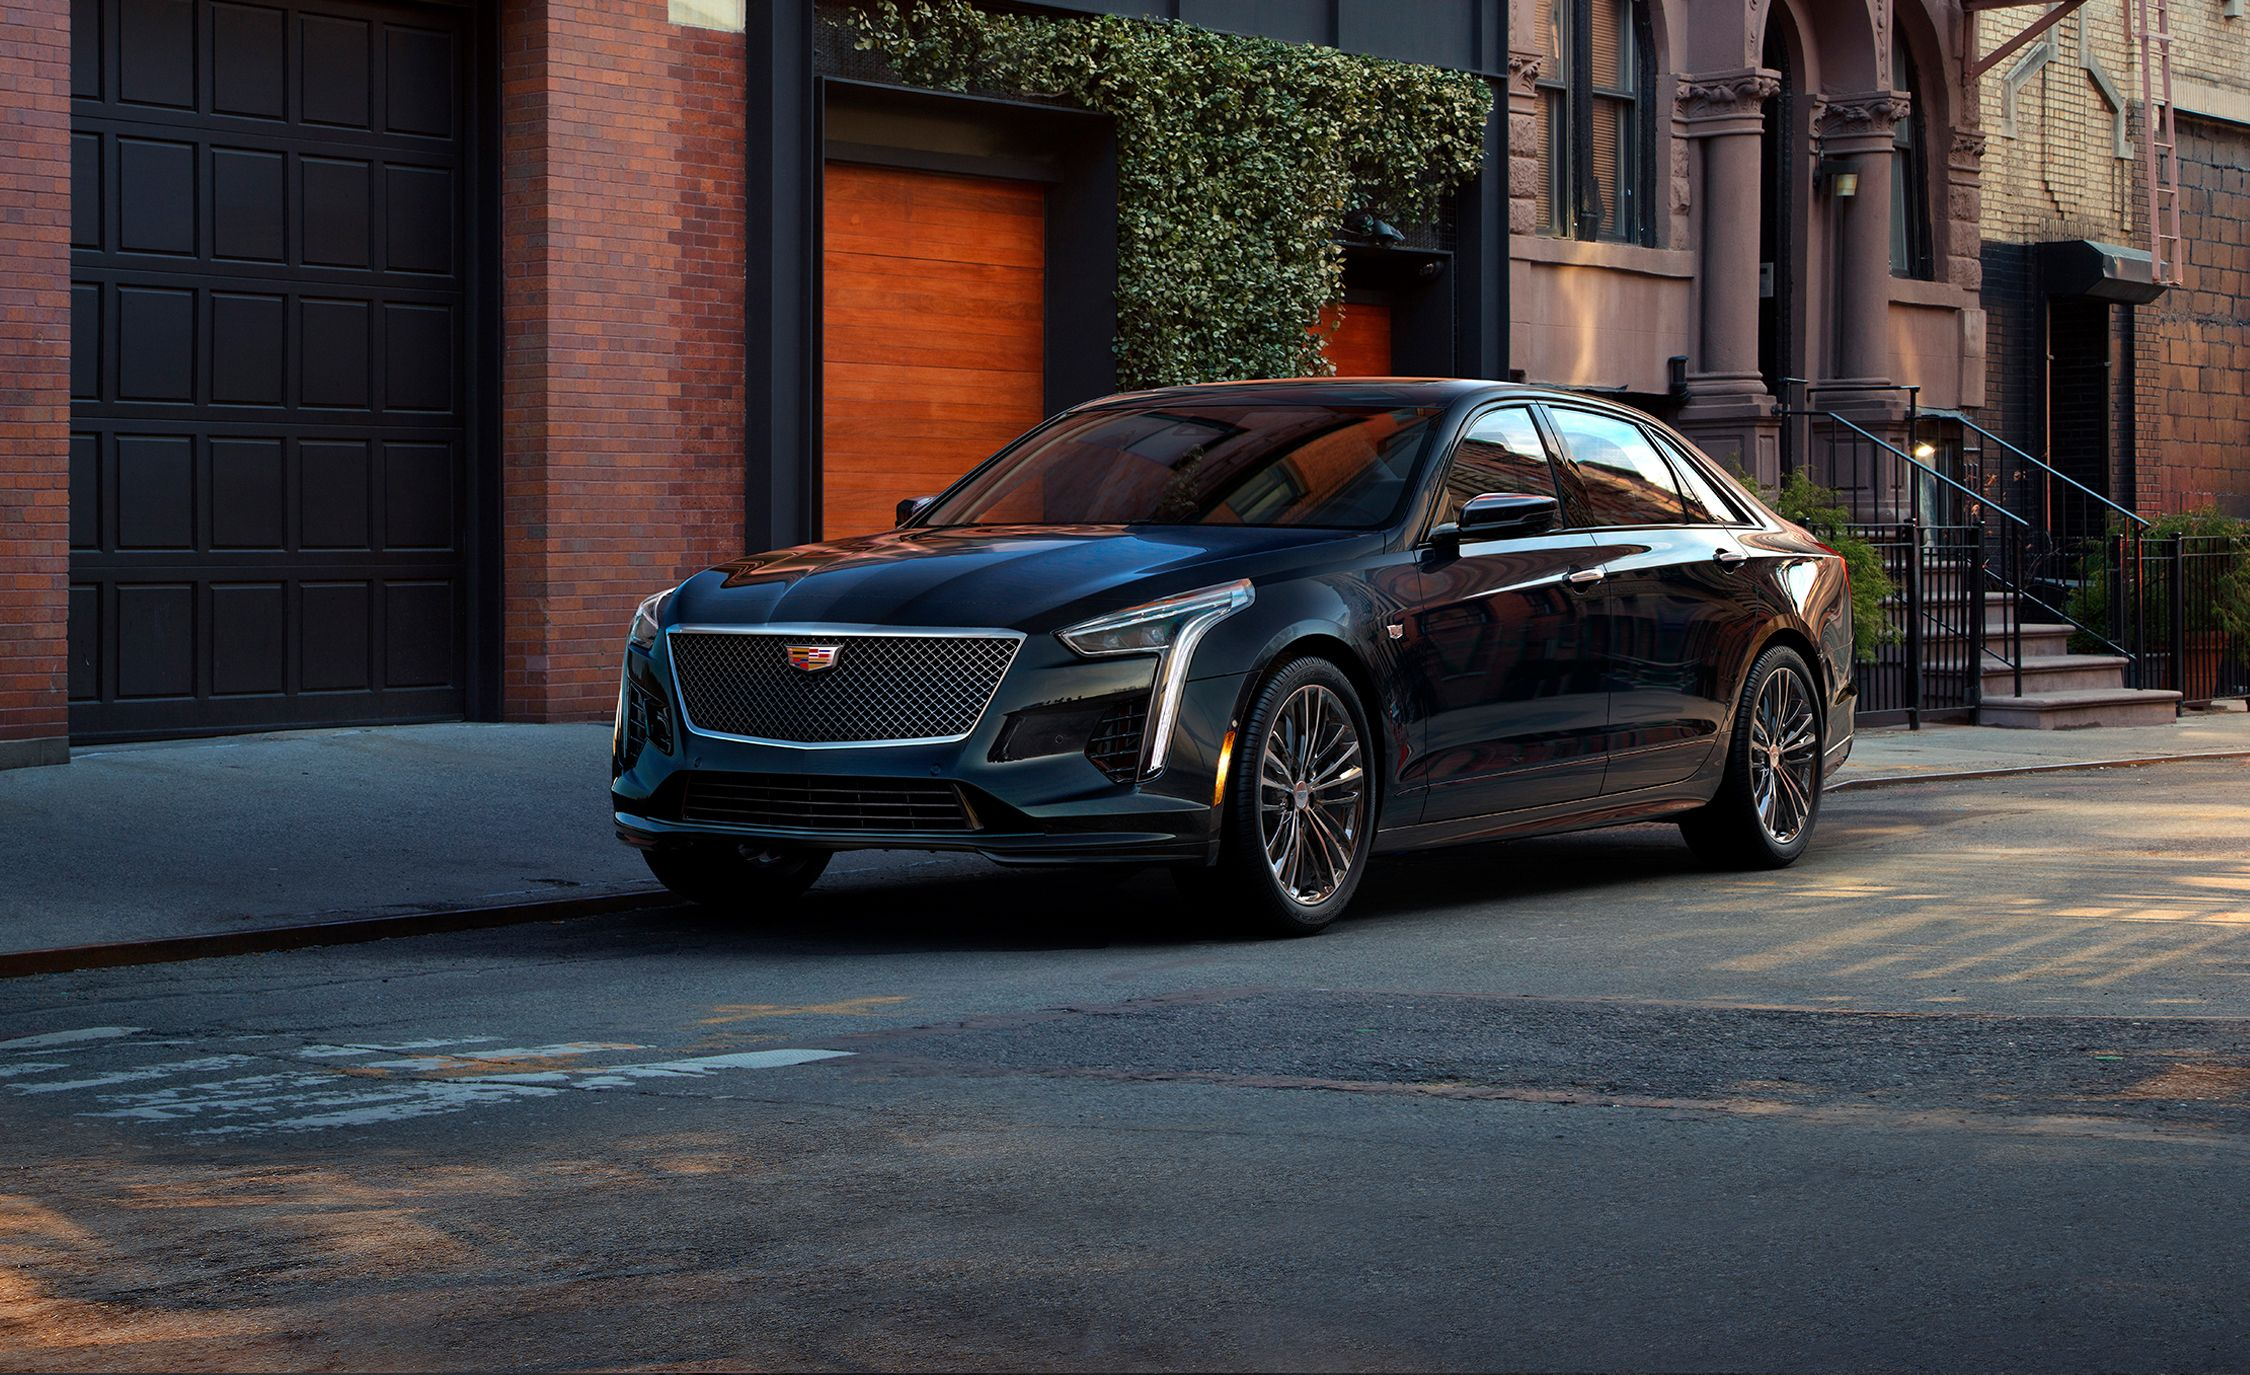 2019 Cadillac CT6-V Announced – New High-Performance ...